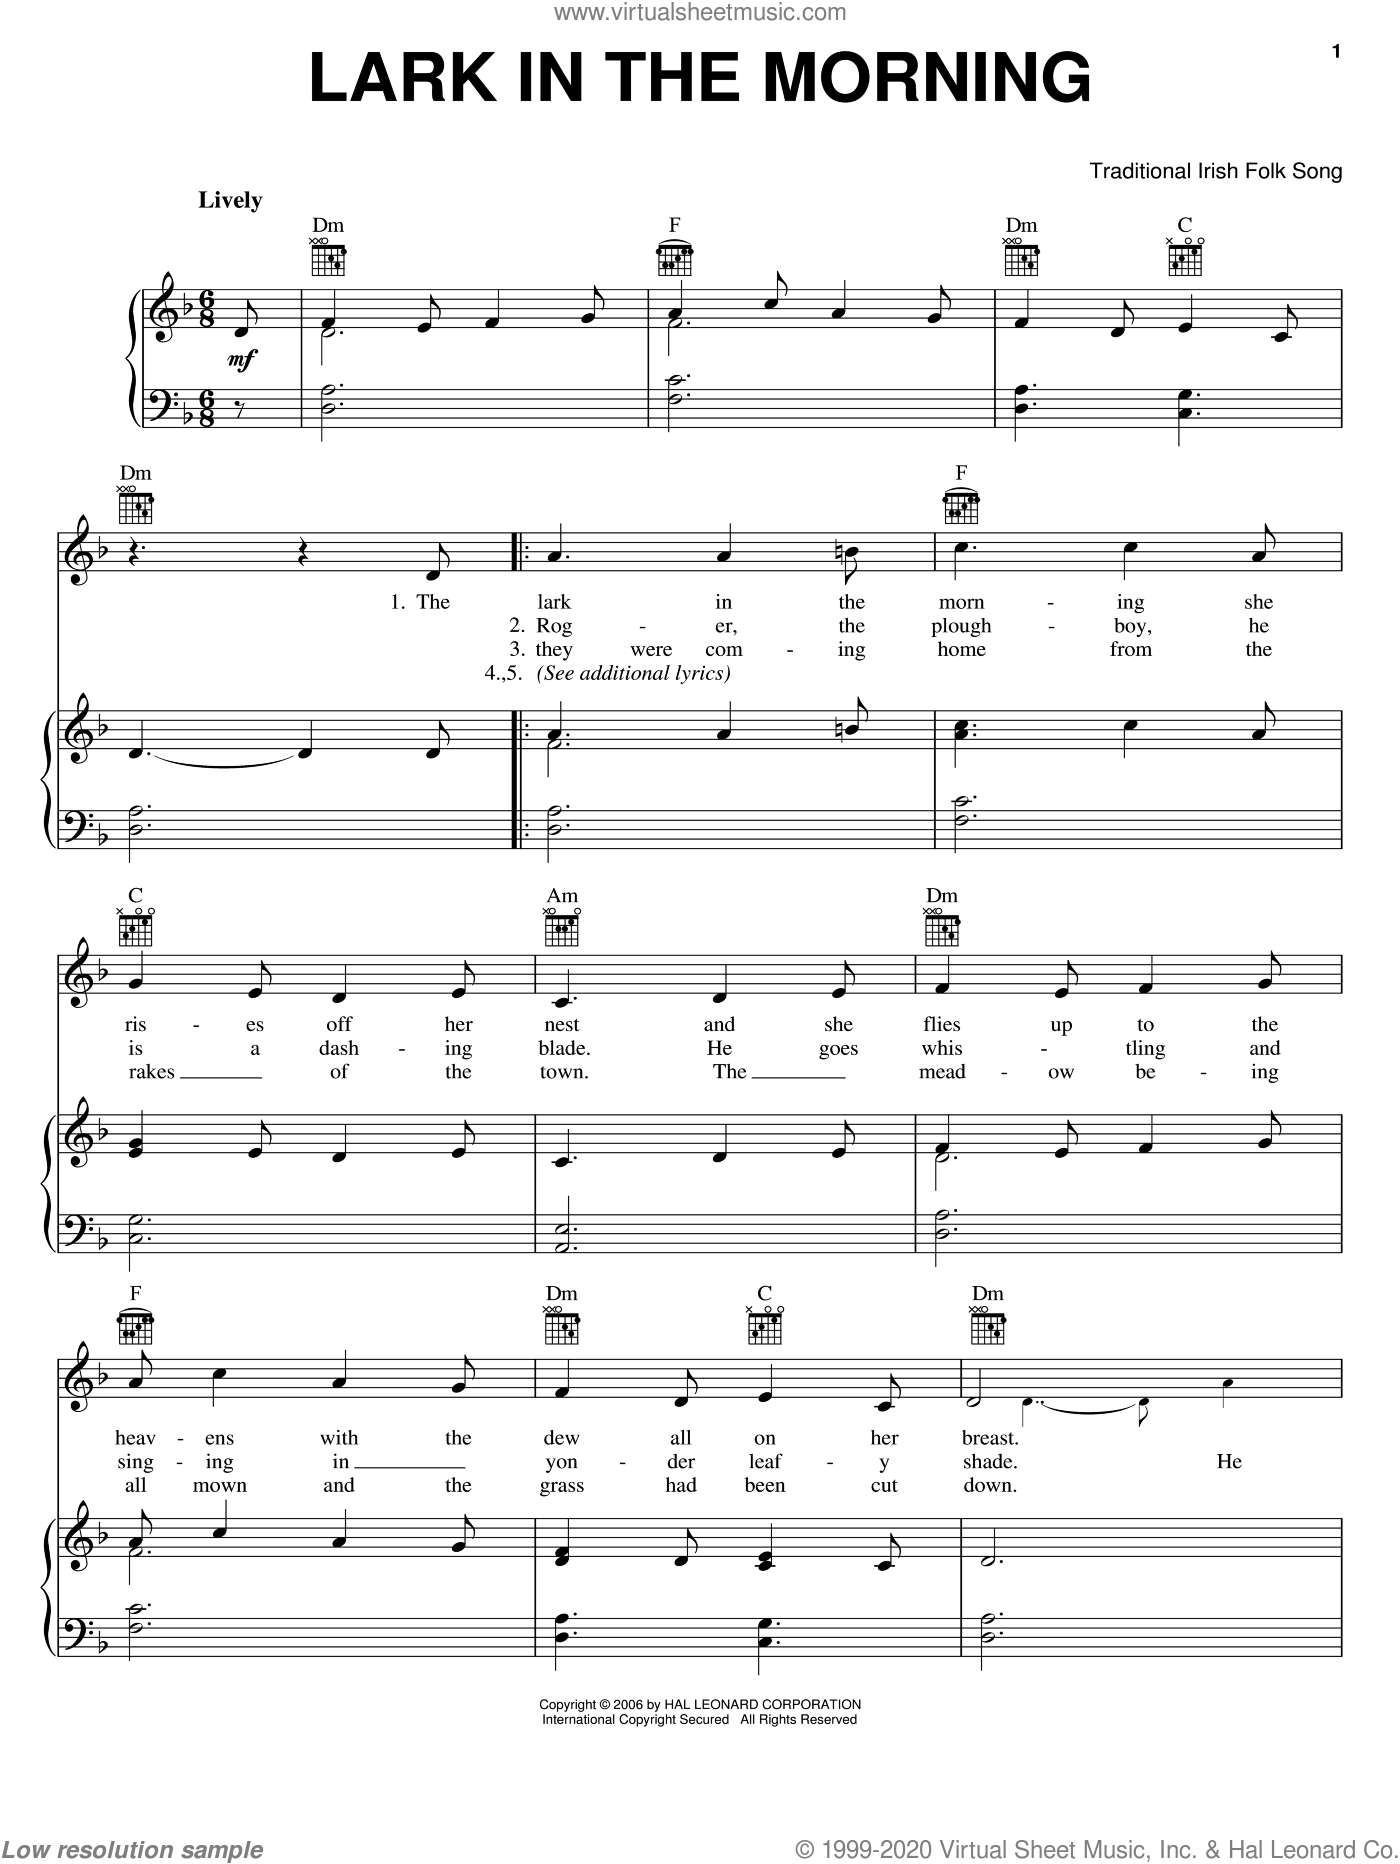 Lark In The Morning sheet music for voice, piano or guitar. Score Image Preview.